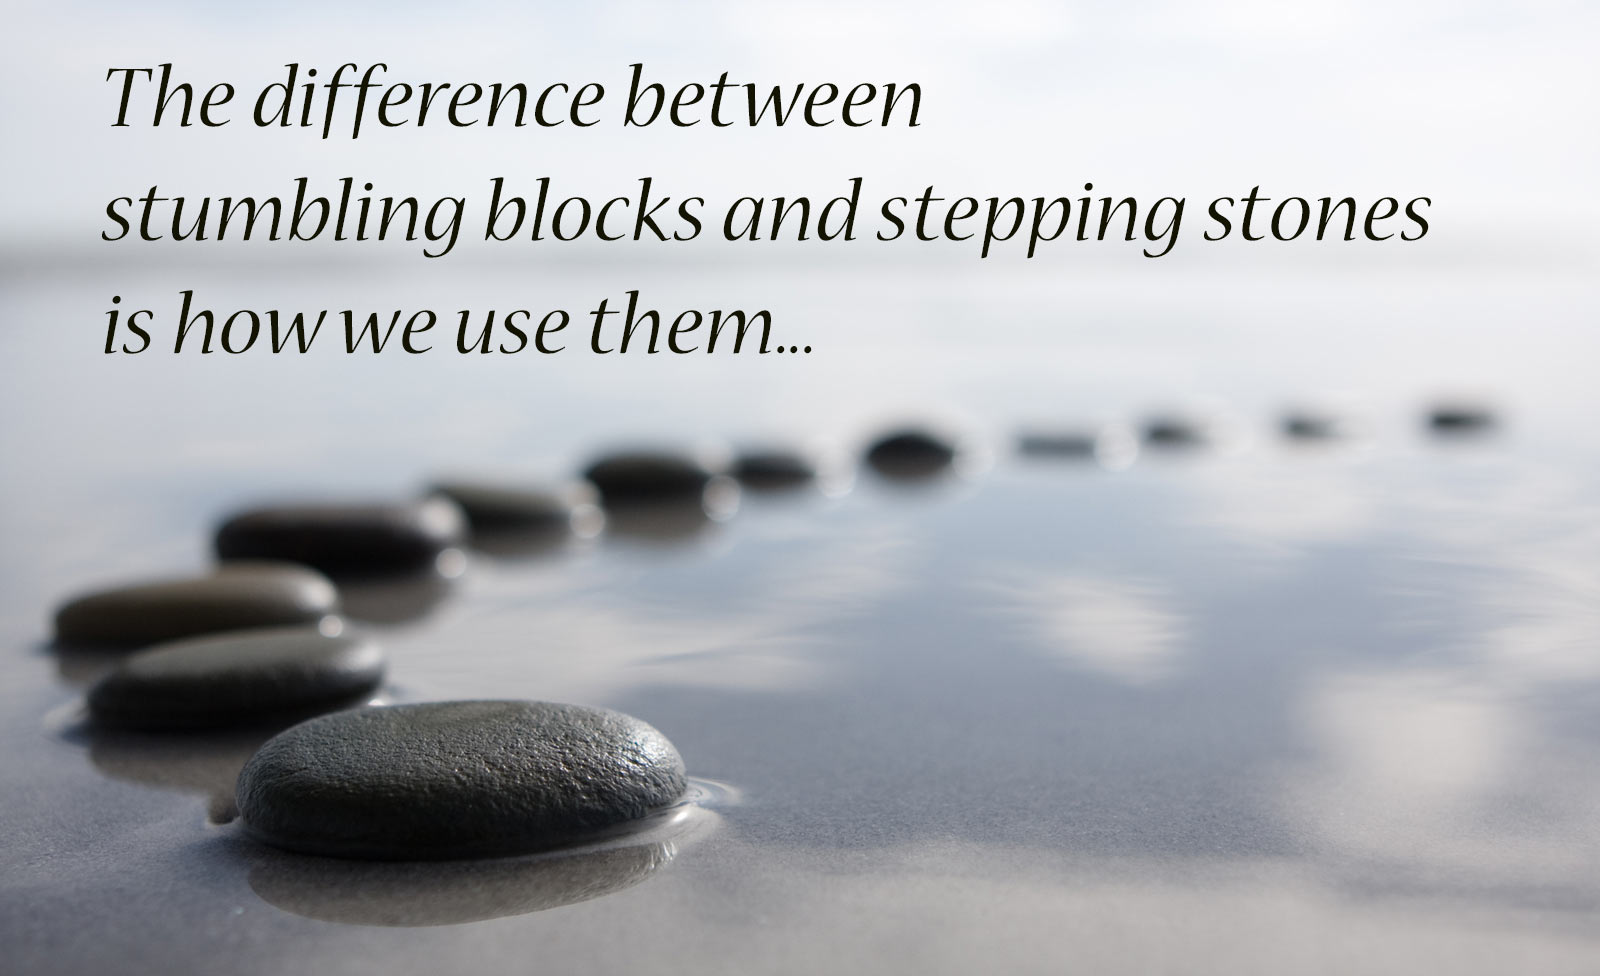 The difference between stumbling blocks and stepping stones